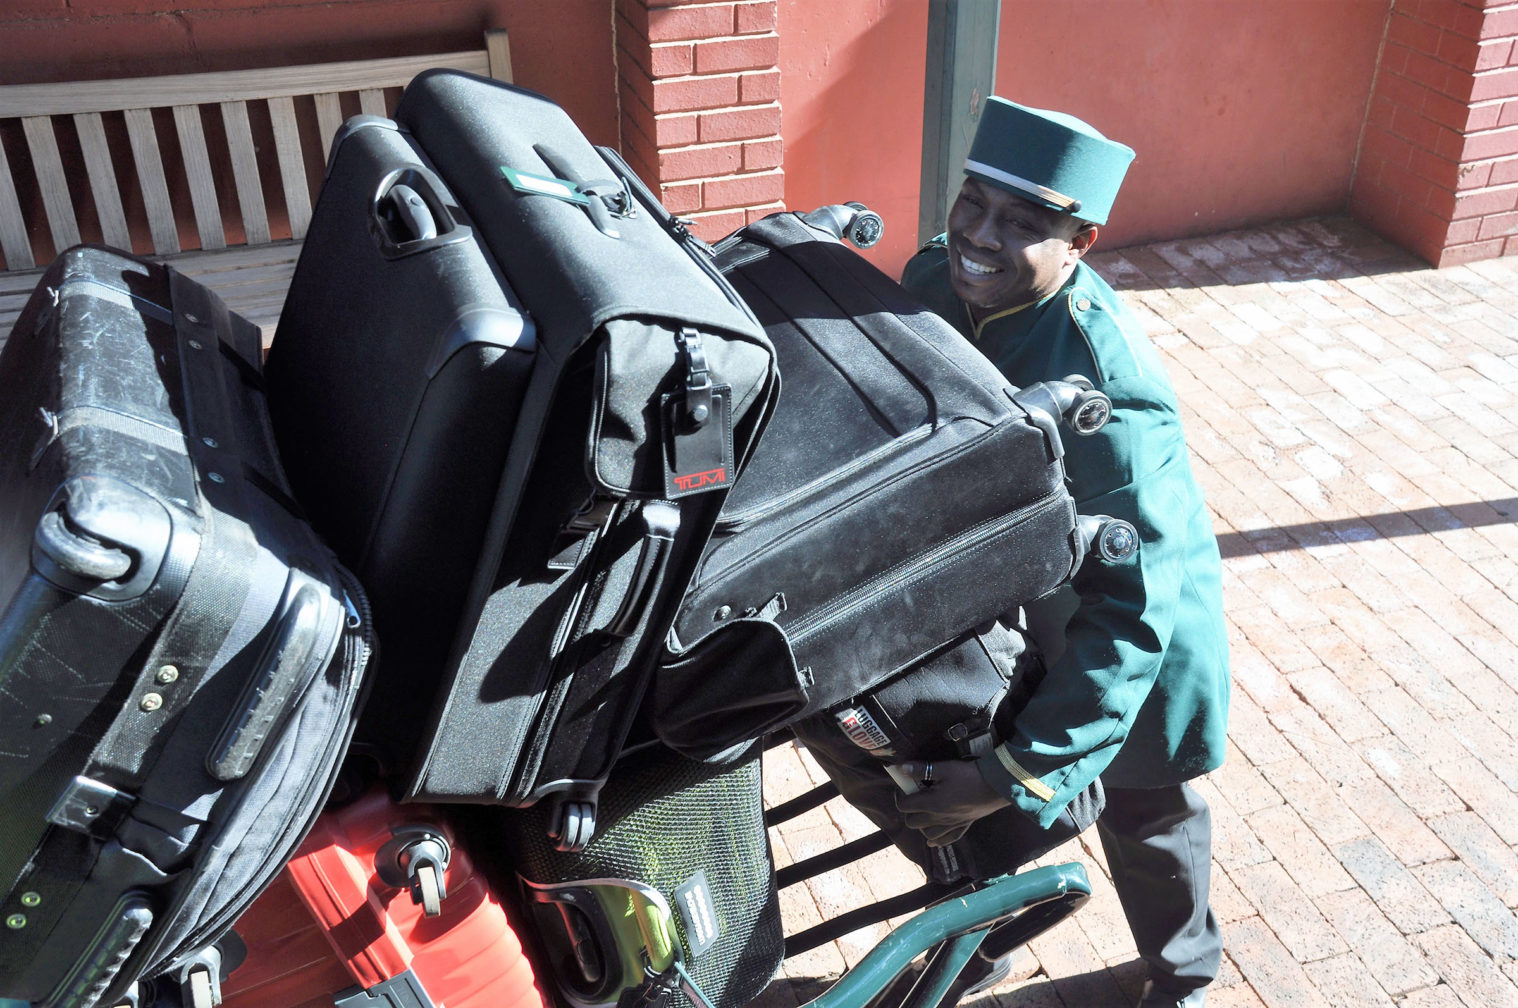 Luggage is whisked away by friendly Rovos Rail porters the moment you arrive at the station. IRT Photo by Angela Walker.